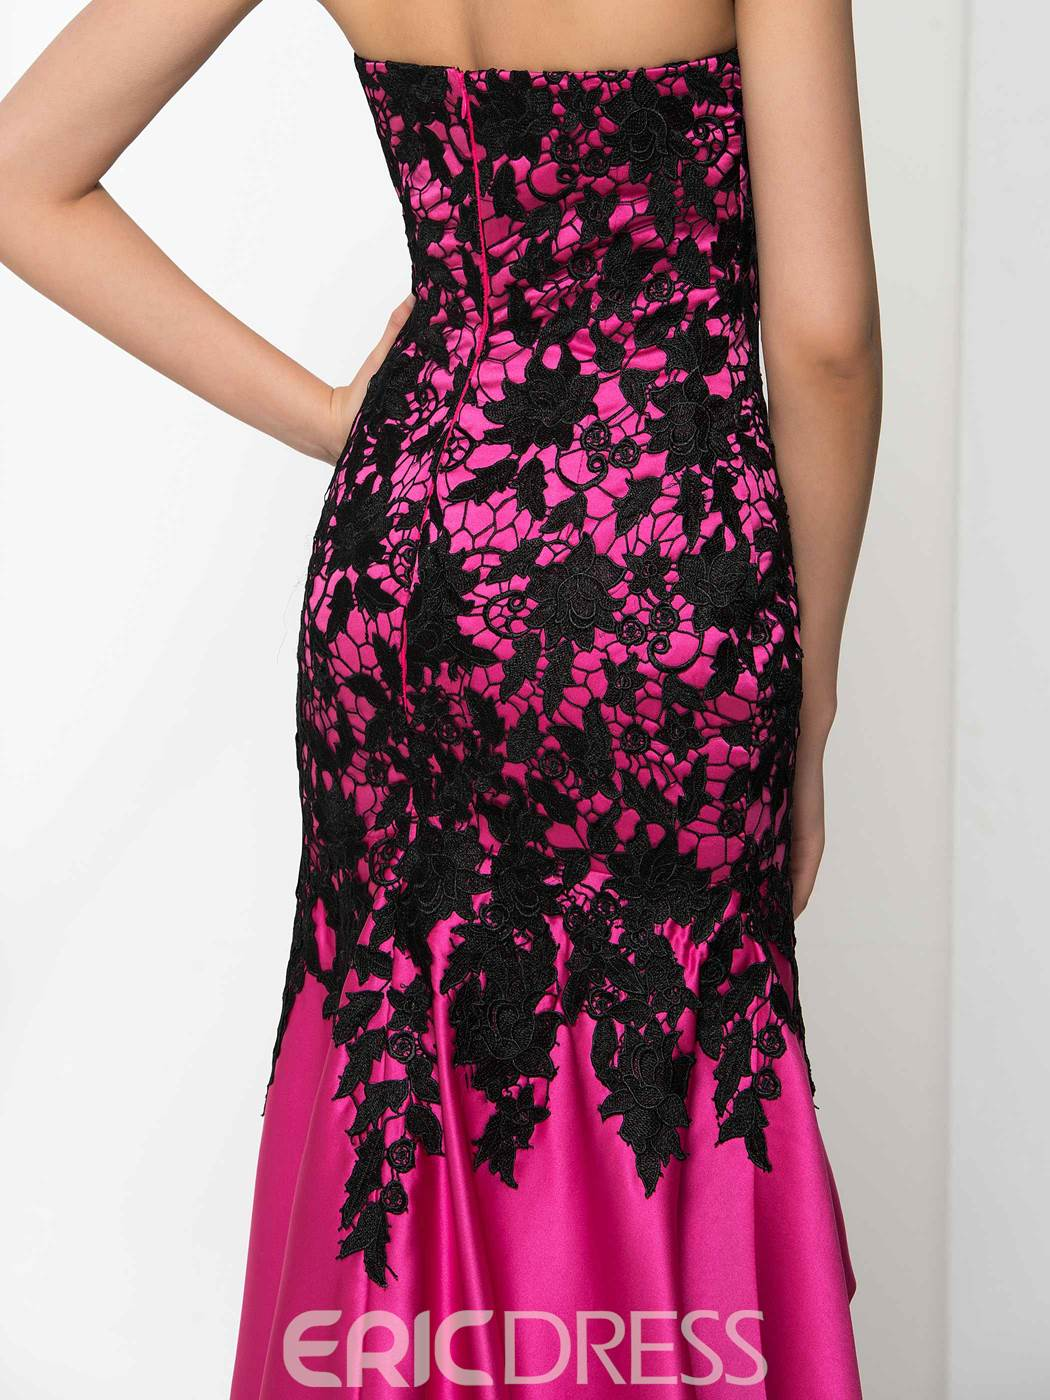 Ericdress Sweetheart Lace High Low Prom Dress